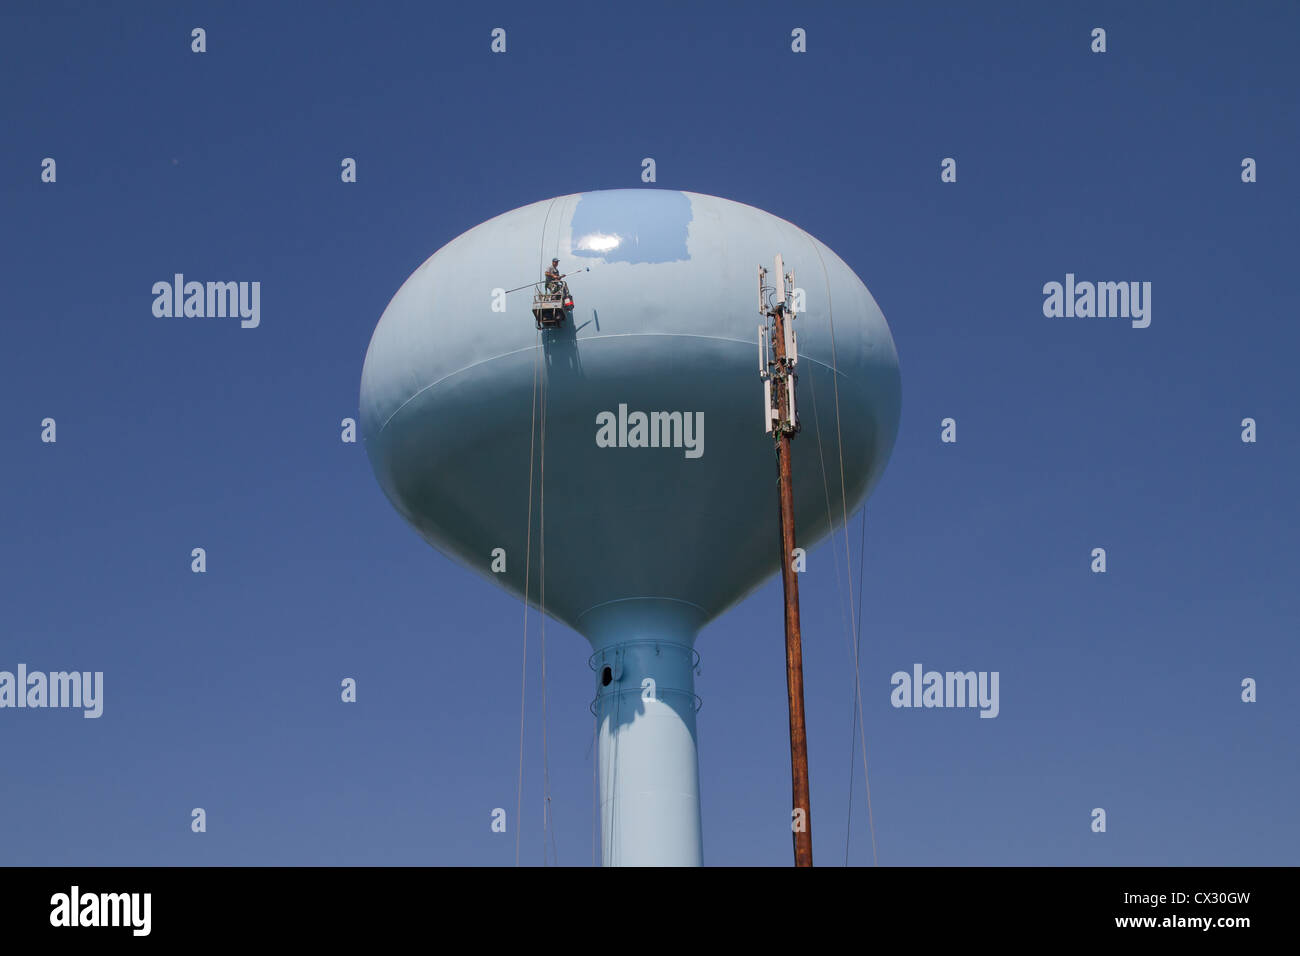 Water tower being repaired and painted - Stock Image